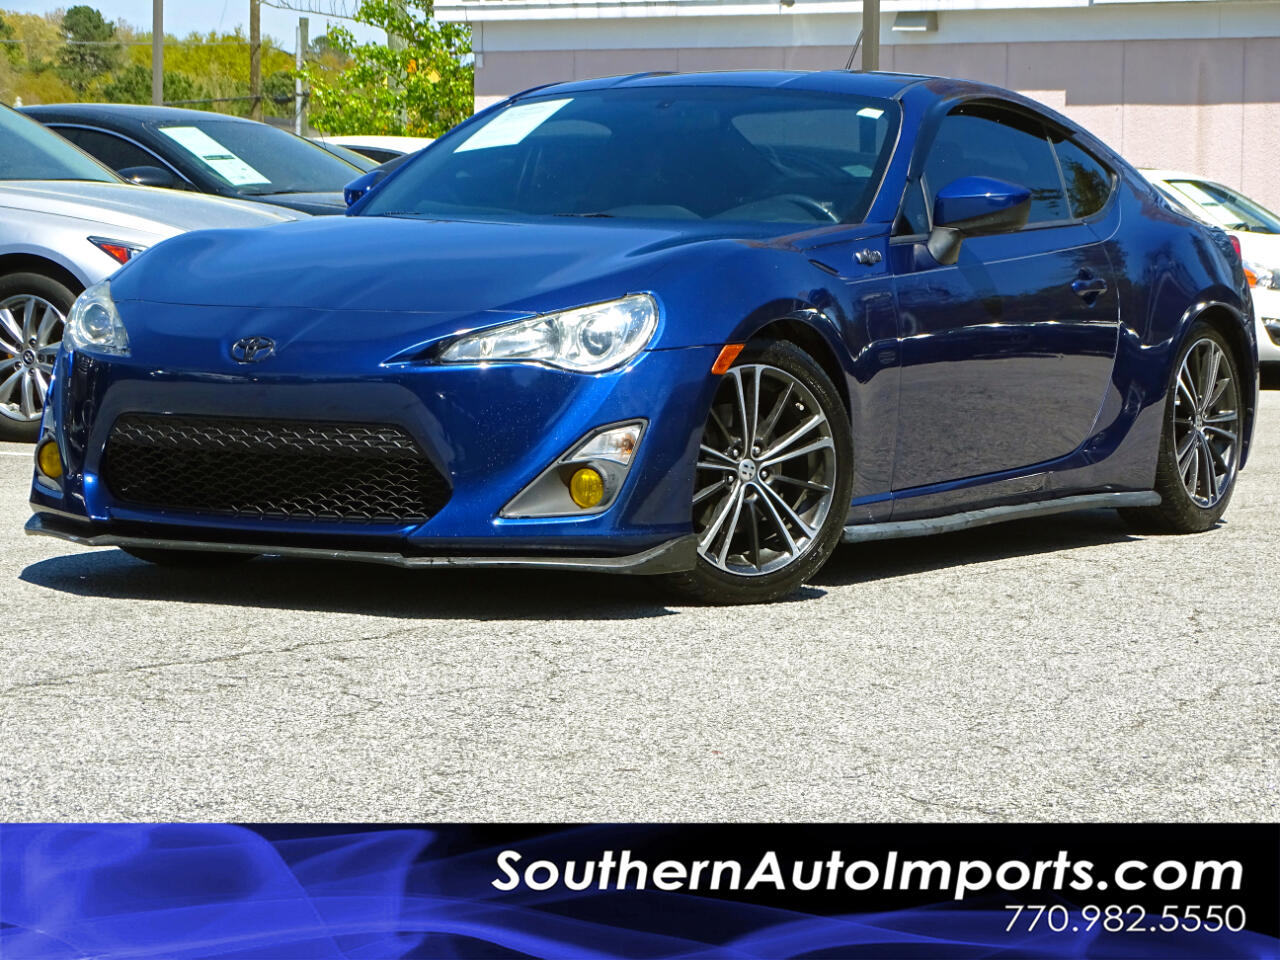 2013 Scion FR-S 6 Speed Manual w/Touch Screen and Upgrades